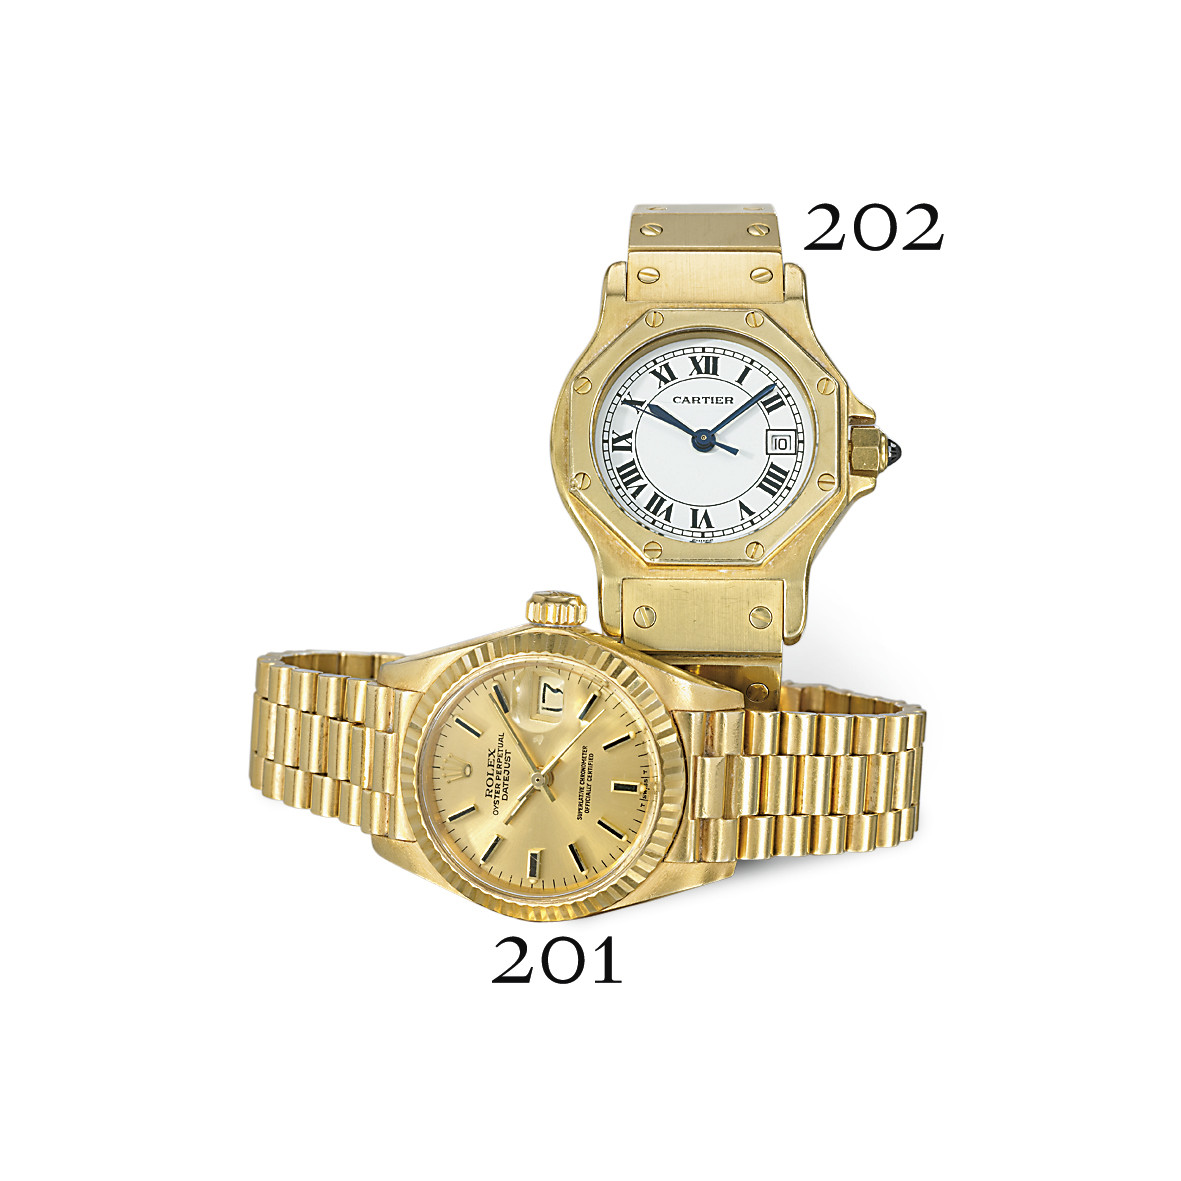 A LADY'S OYSTER PERPETUAL DATE